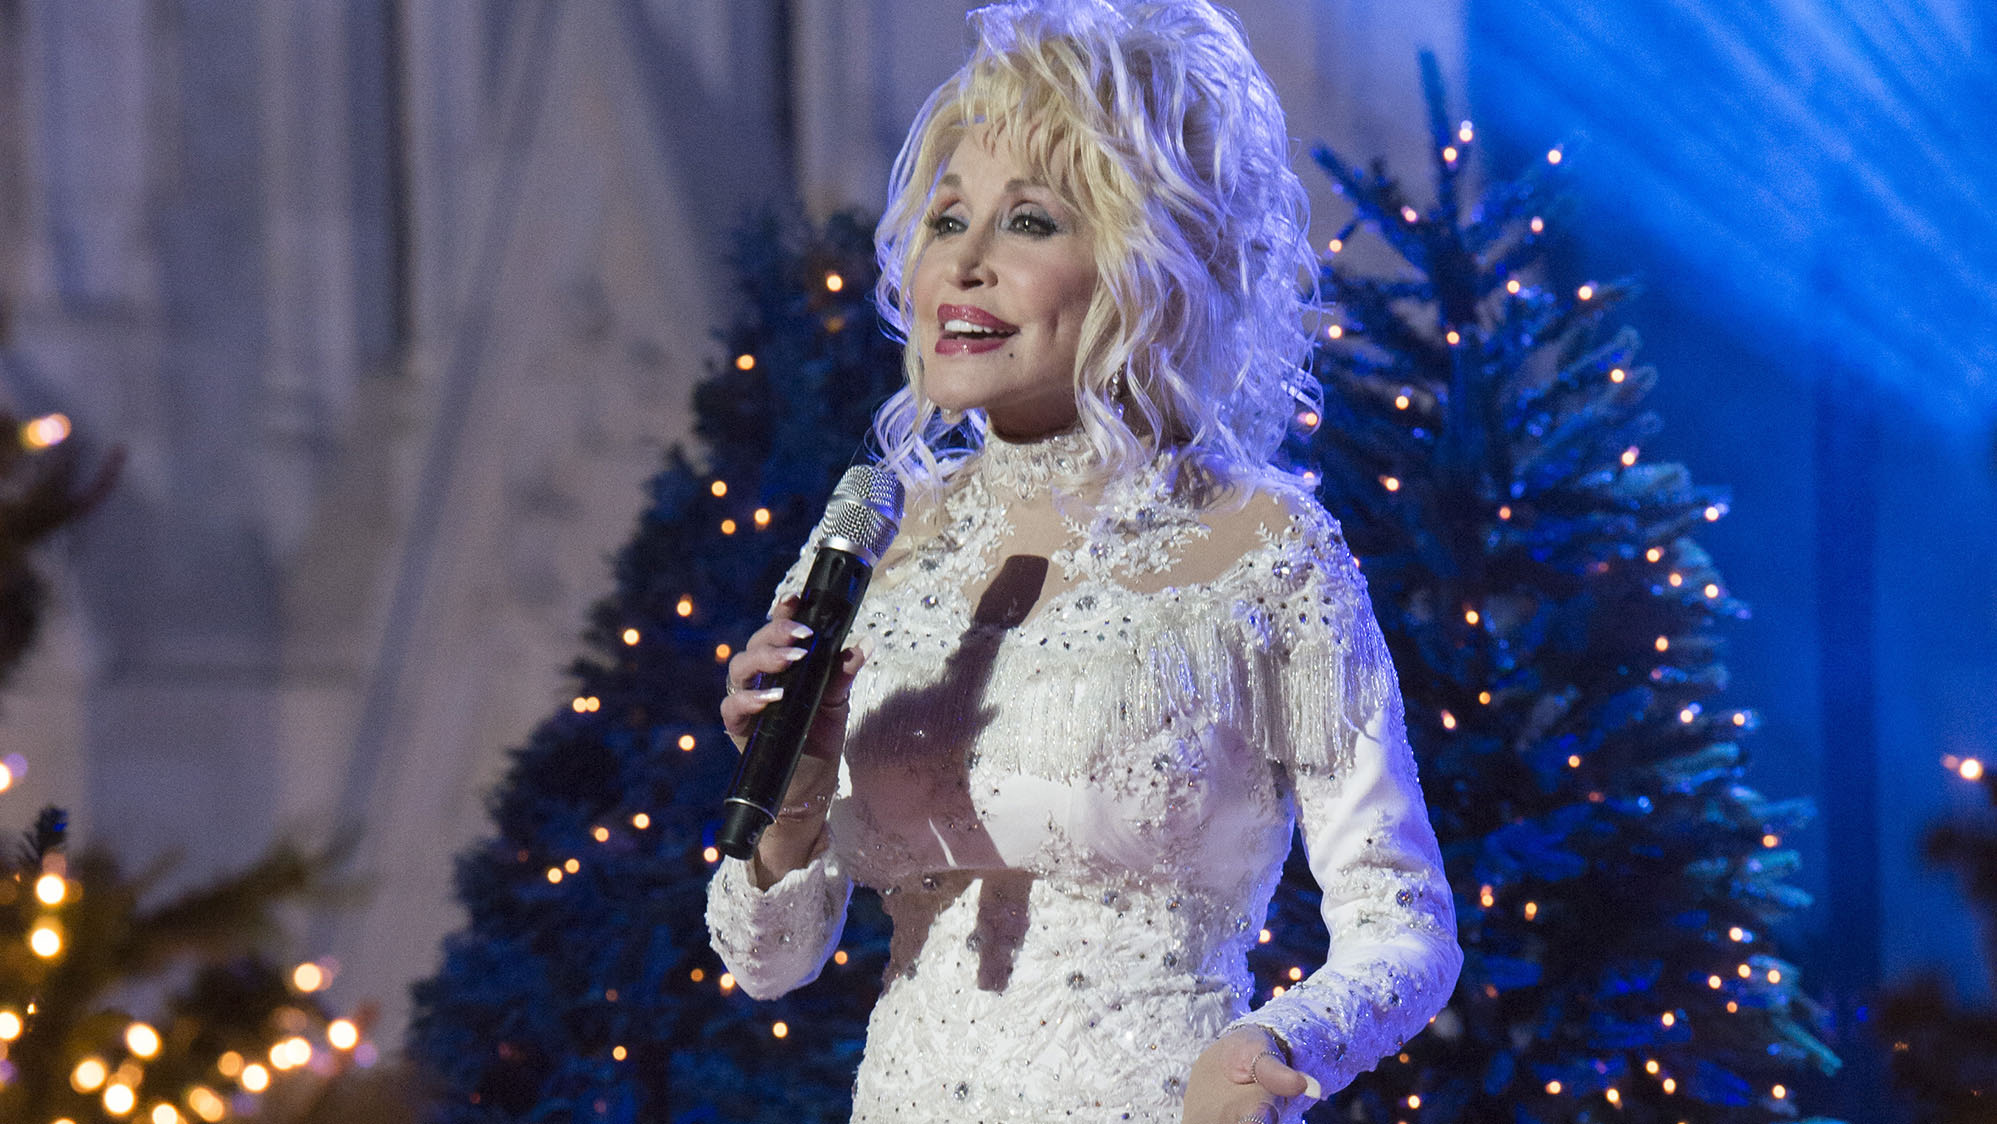 Dolly Parton Christmas.Dolly Parton And More Stars Share Their Favorite Christmas